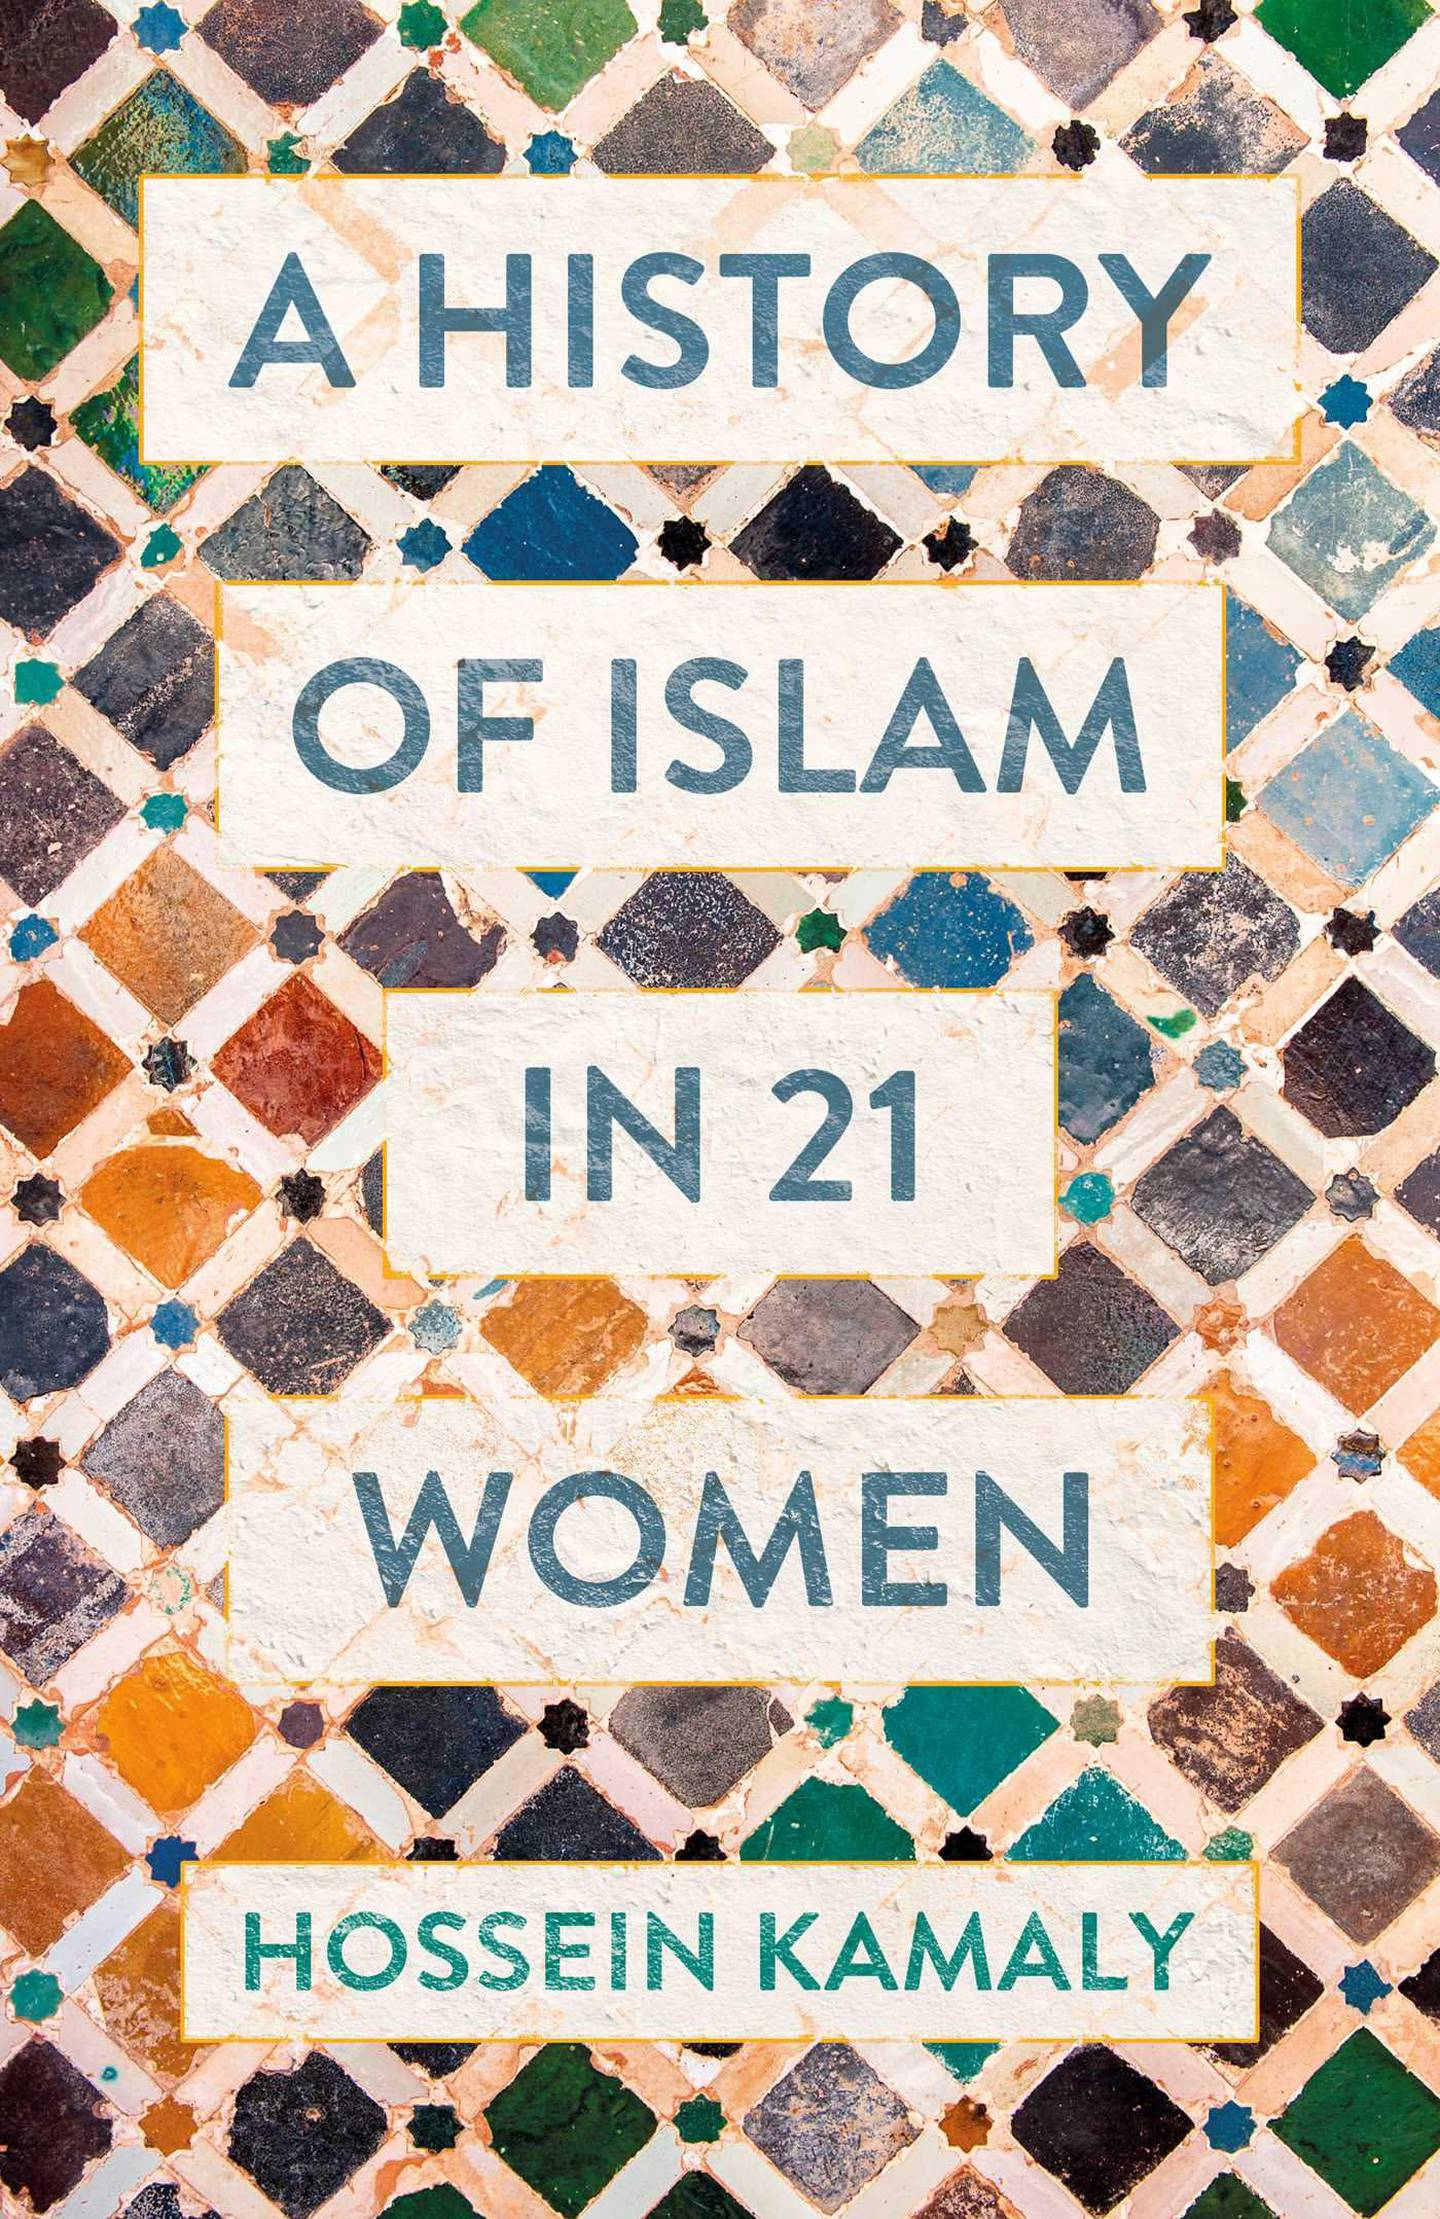 A History of Islam in 21 Women by Hossein Kamaly published by Oneworld Publications. Courtesy Simon & Schuster